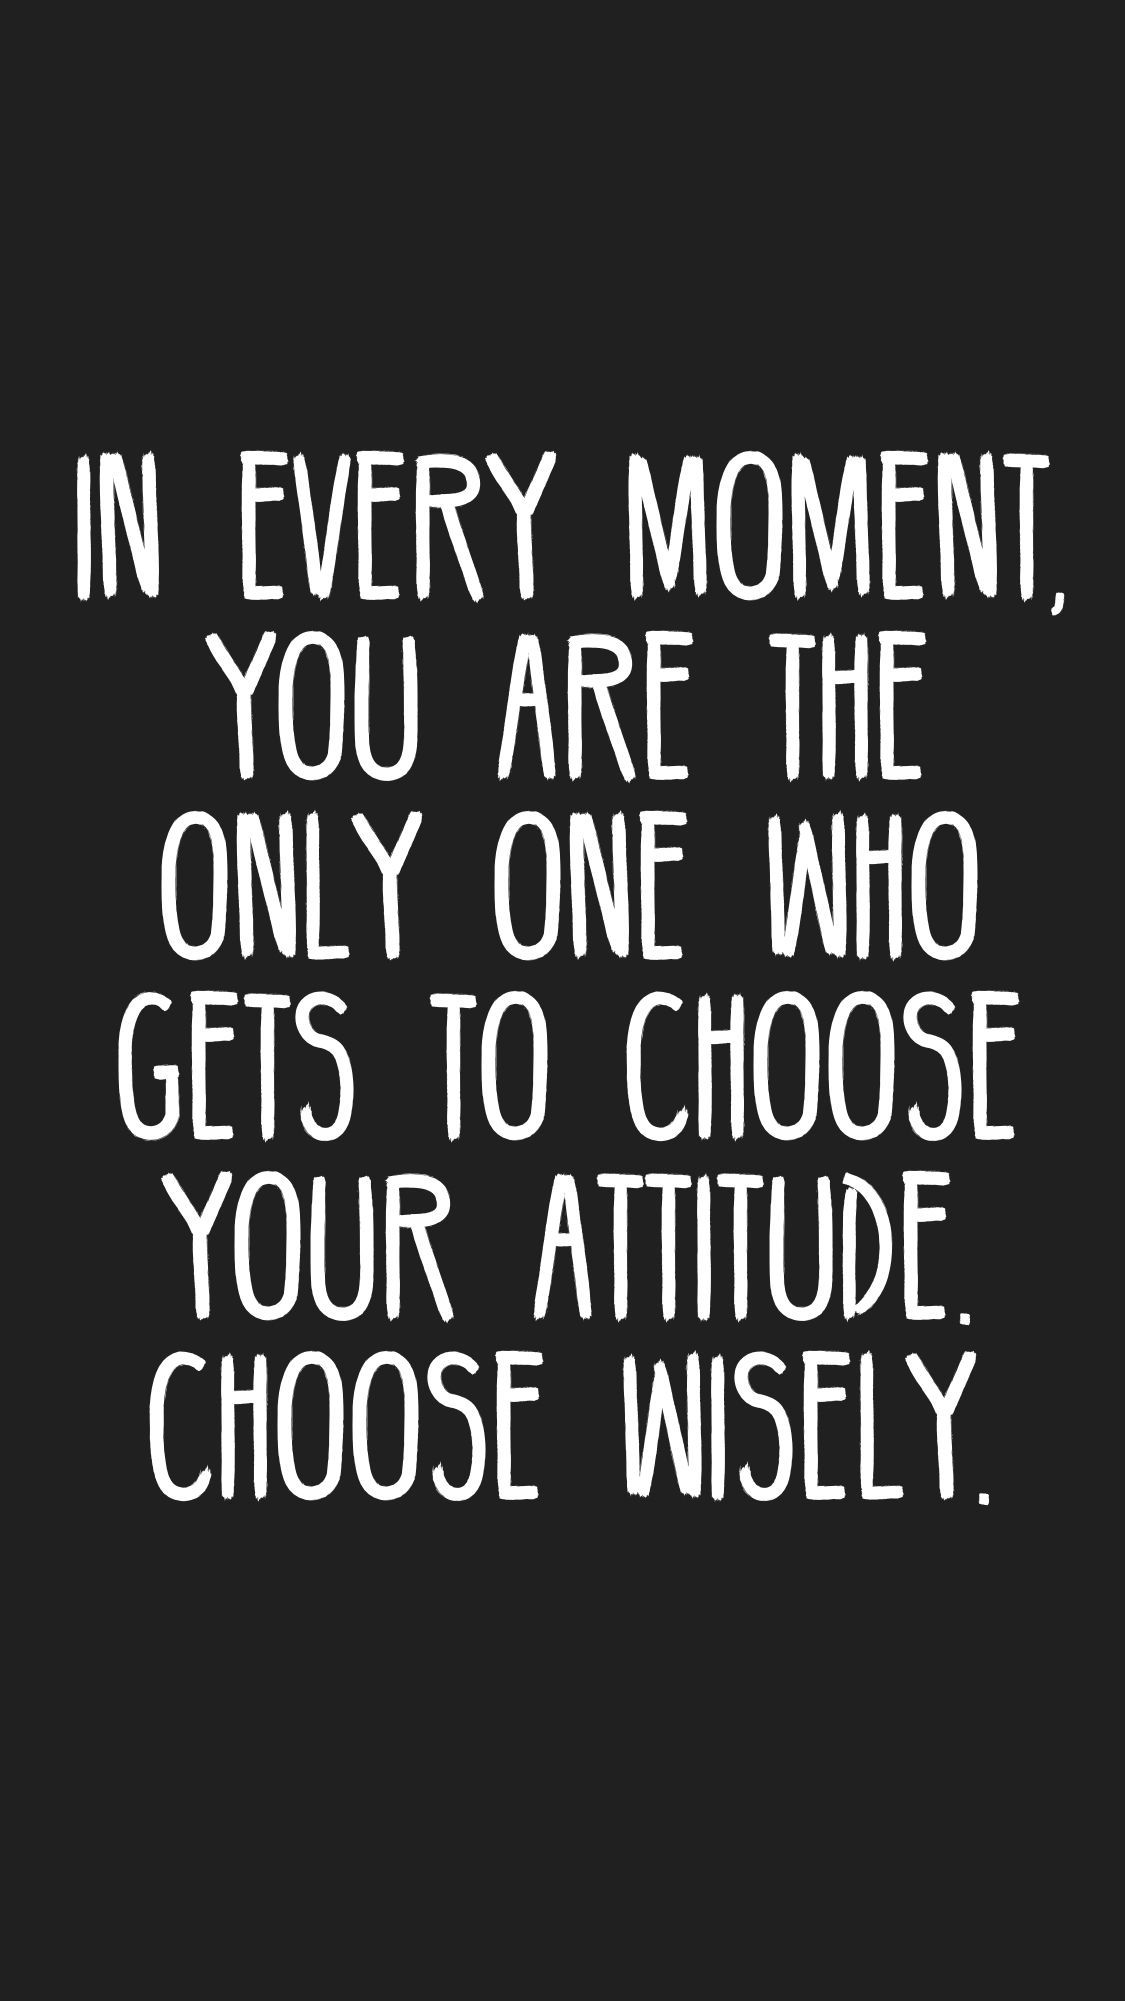 Choose wisely quotes